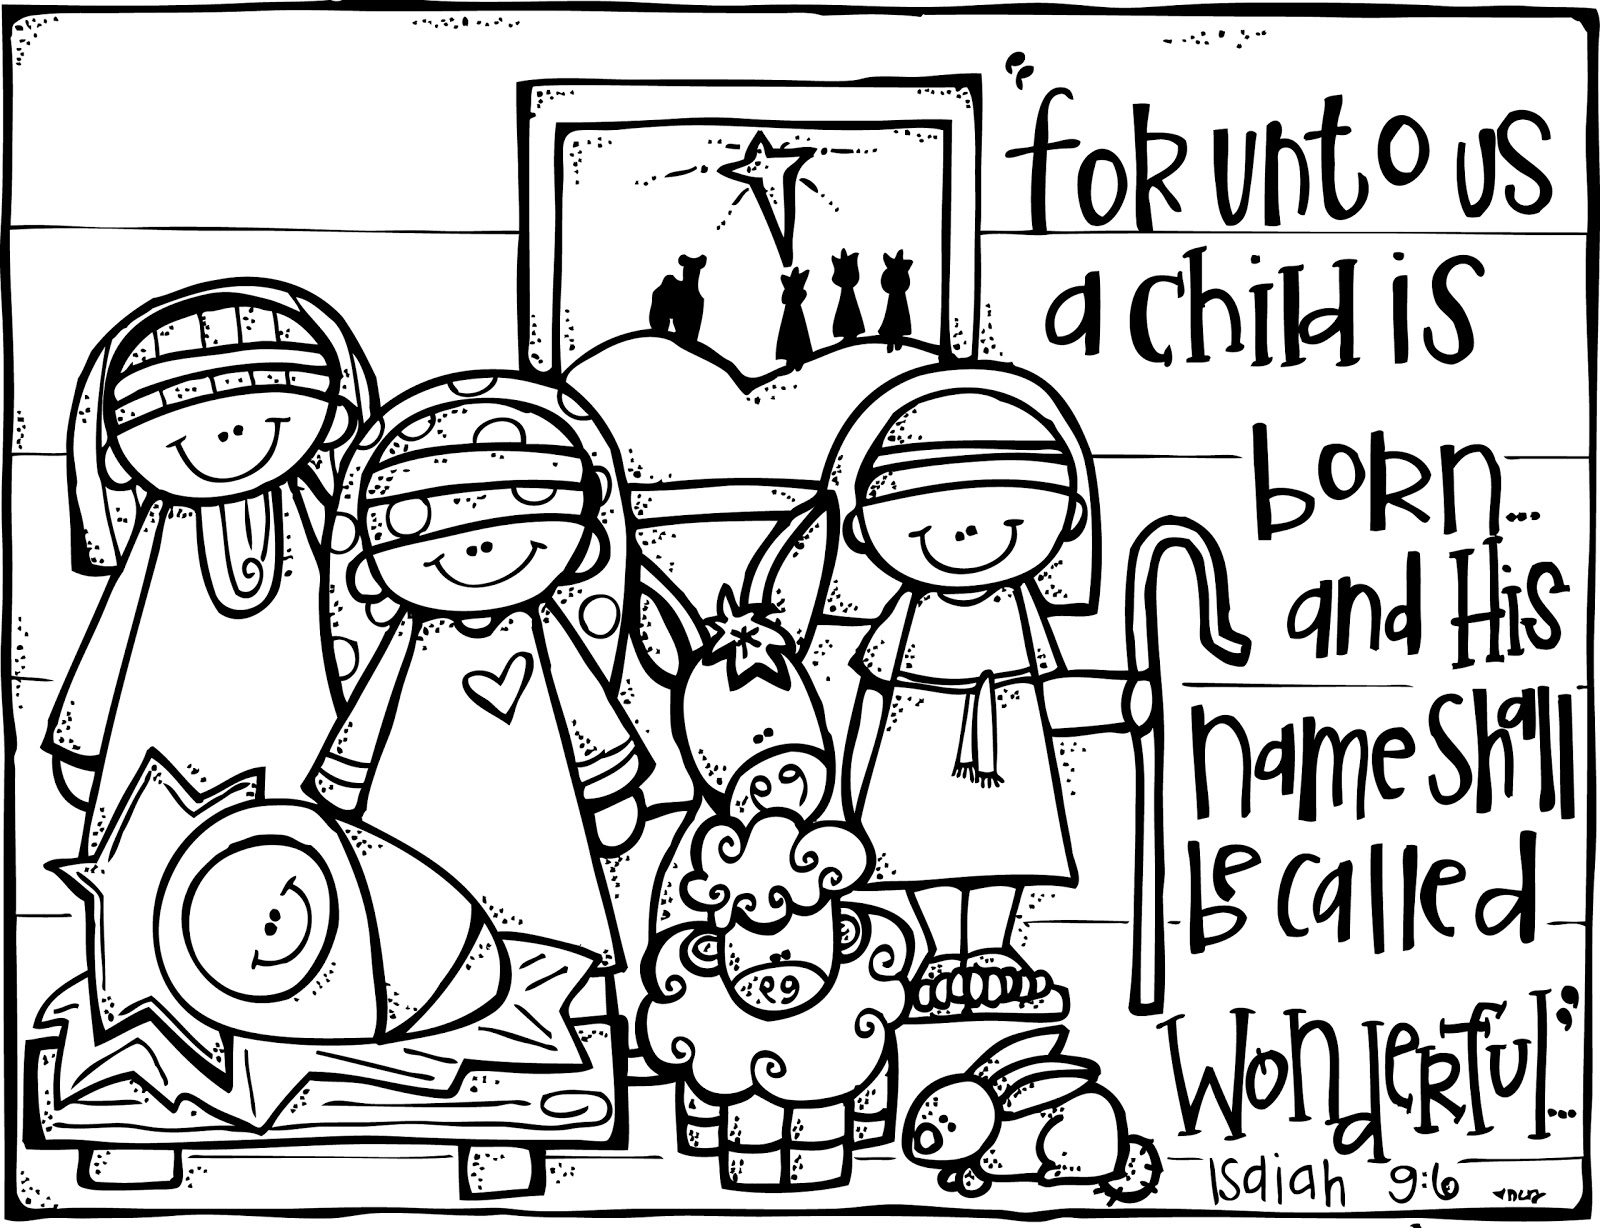 nativity coloring page isaiah 96 - Nativity Coloring Pages Printable